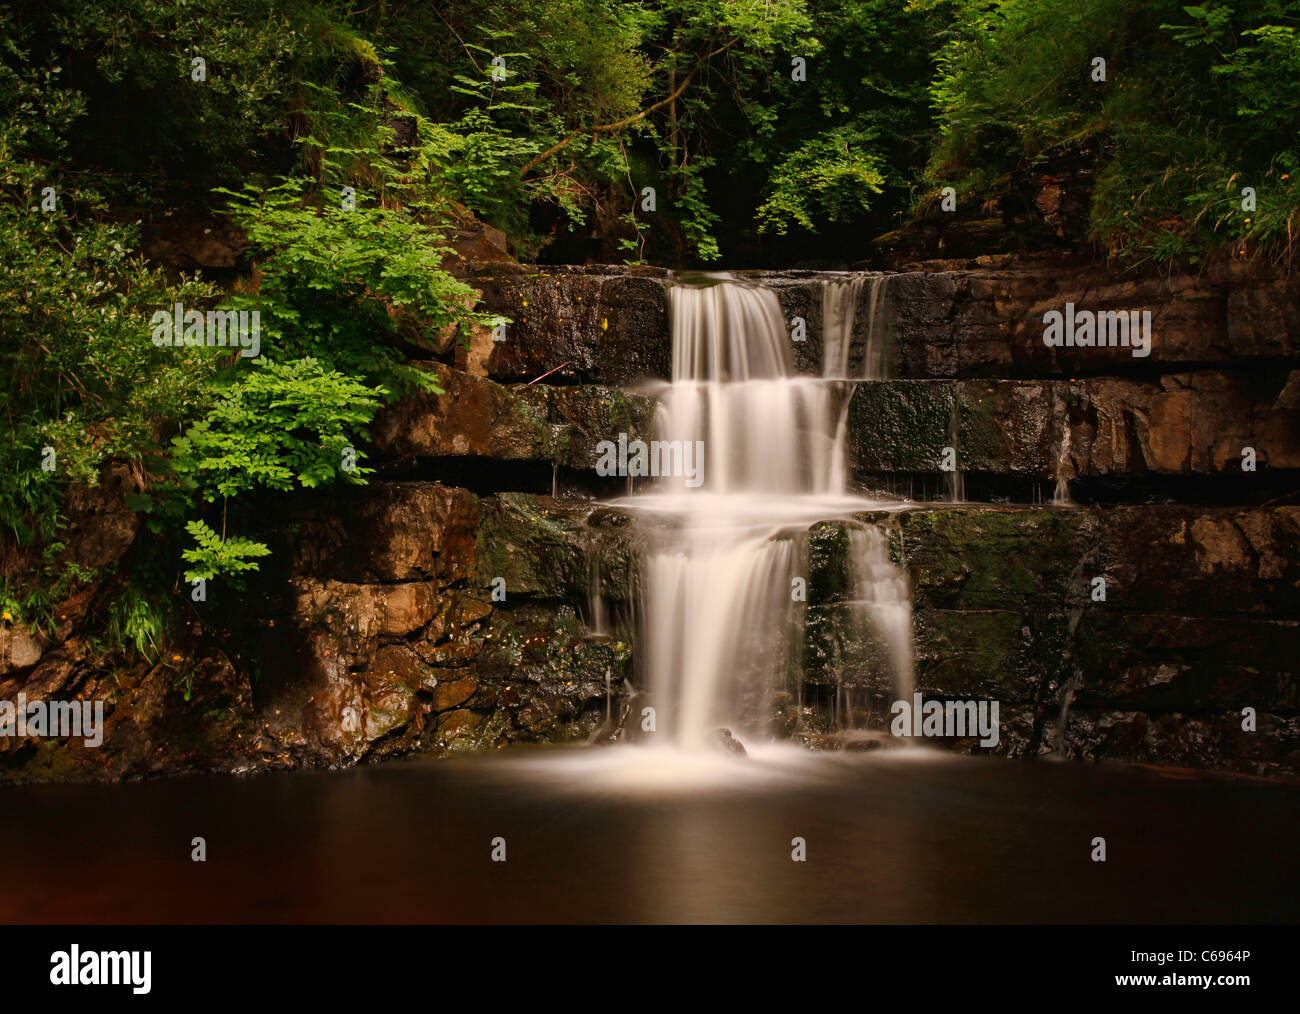 Waterfall at Bowlees Country Park, Teesdale, County Durham, England - Stock Image